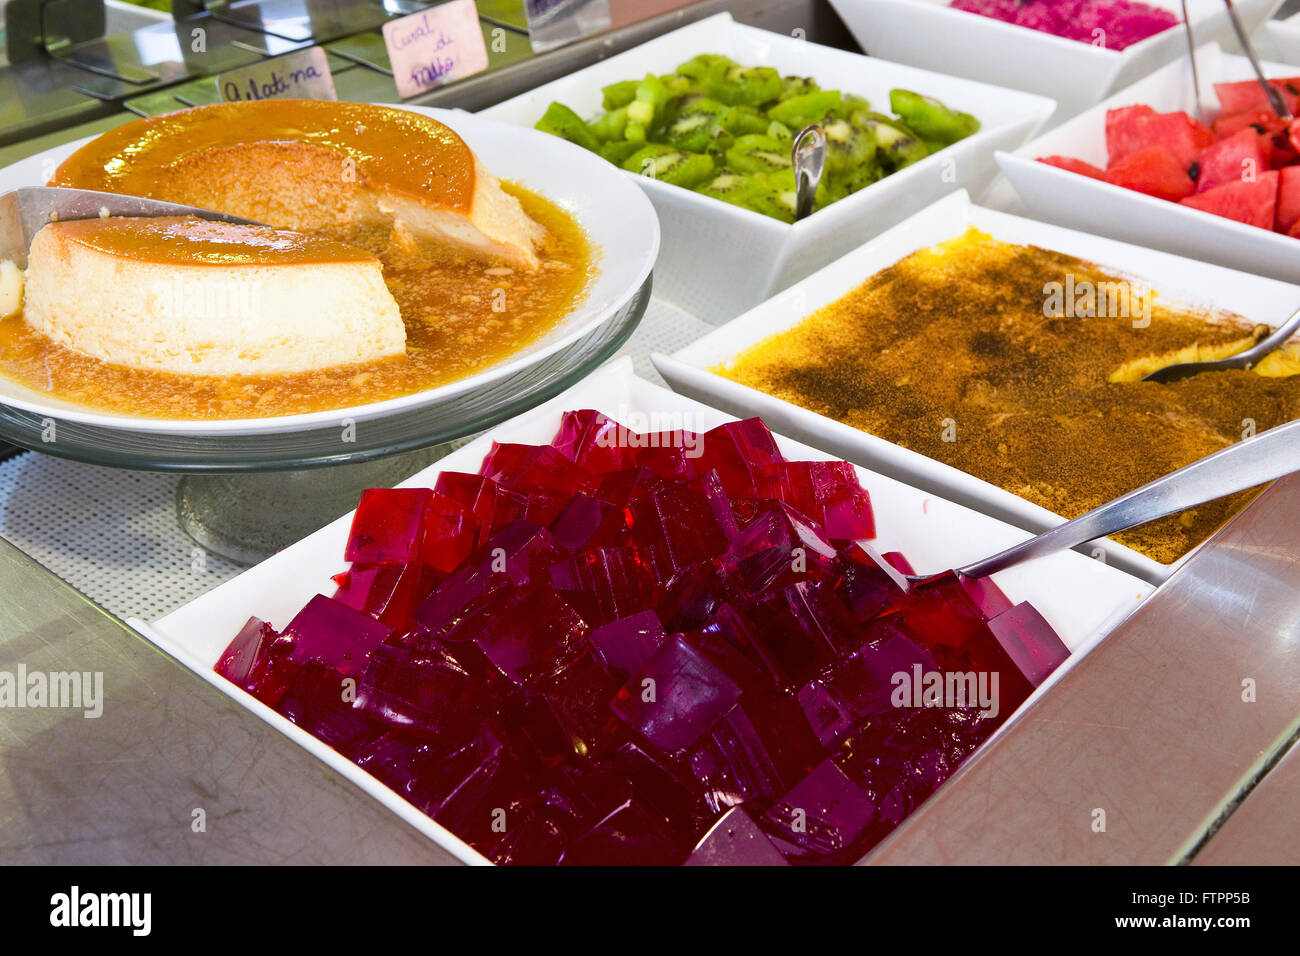 Buffet restaurant with gelatin desserts, pudding, curau green corn and fruit - Stock Image